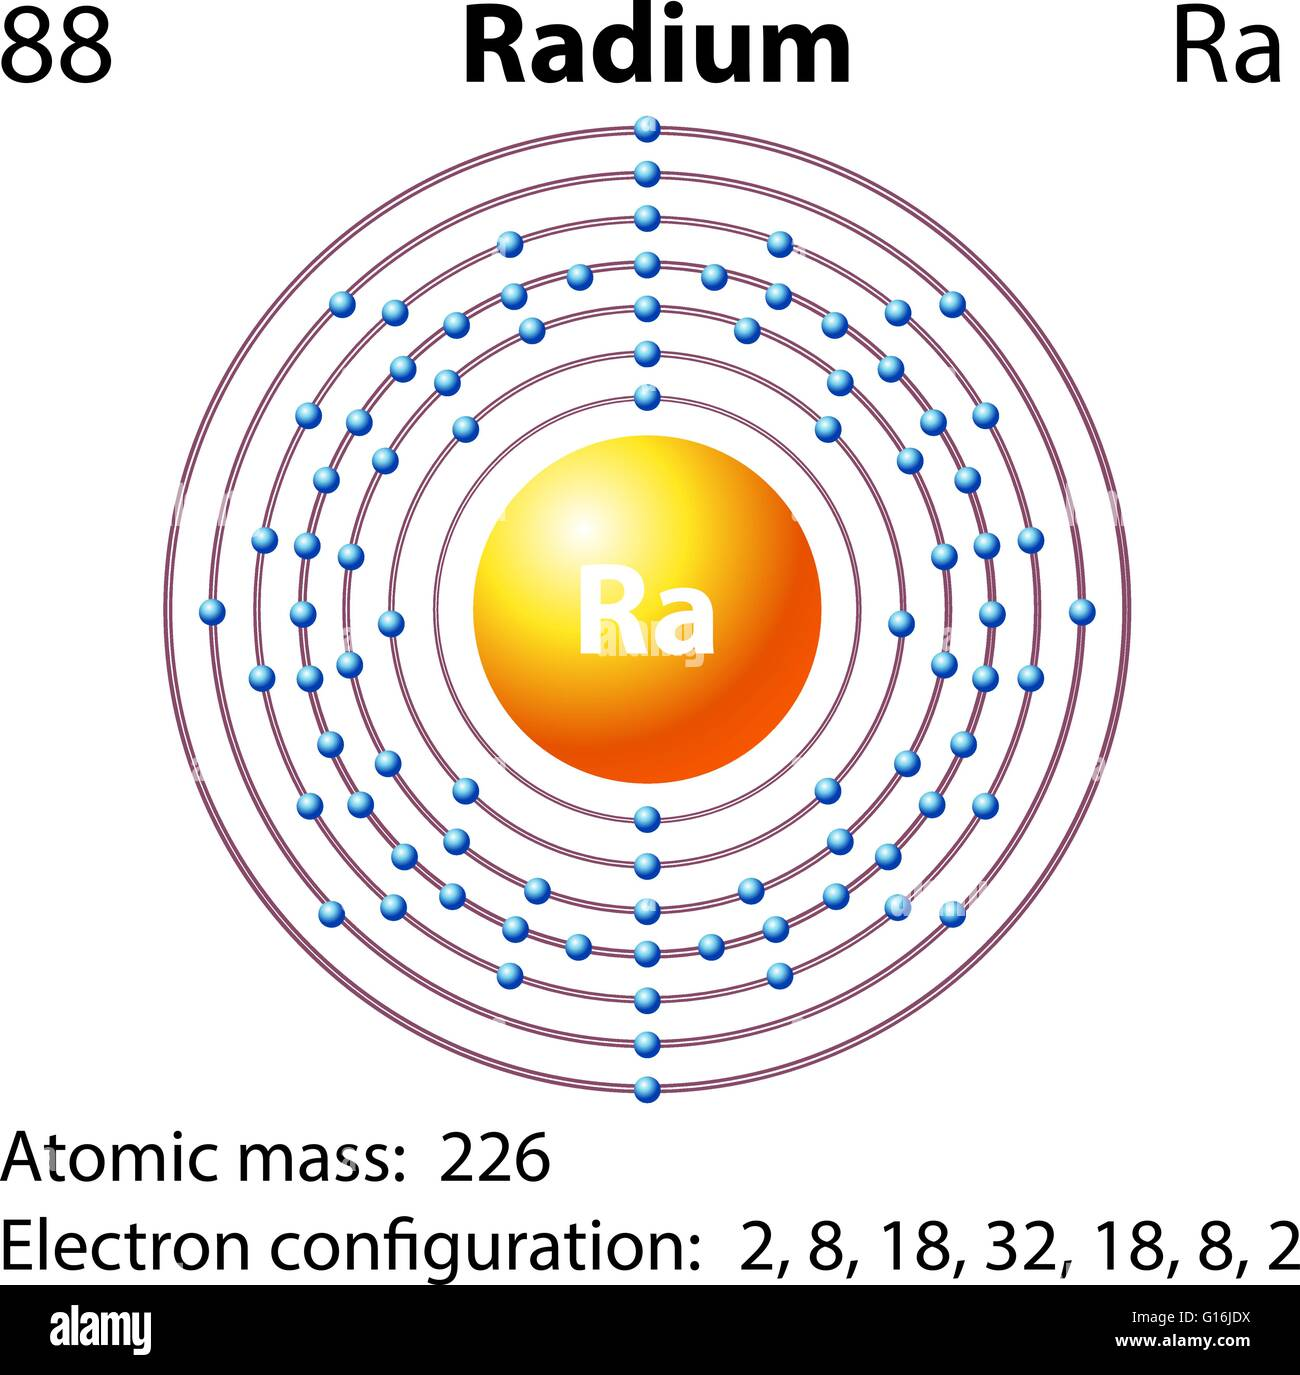 hight resolution of diagram representation of the element radium illustration stock rh alamy com diagram of sodium atom diagram